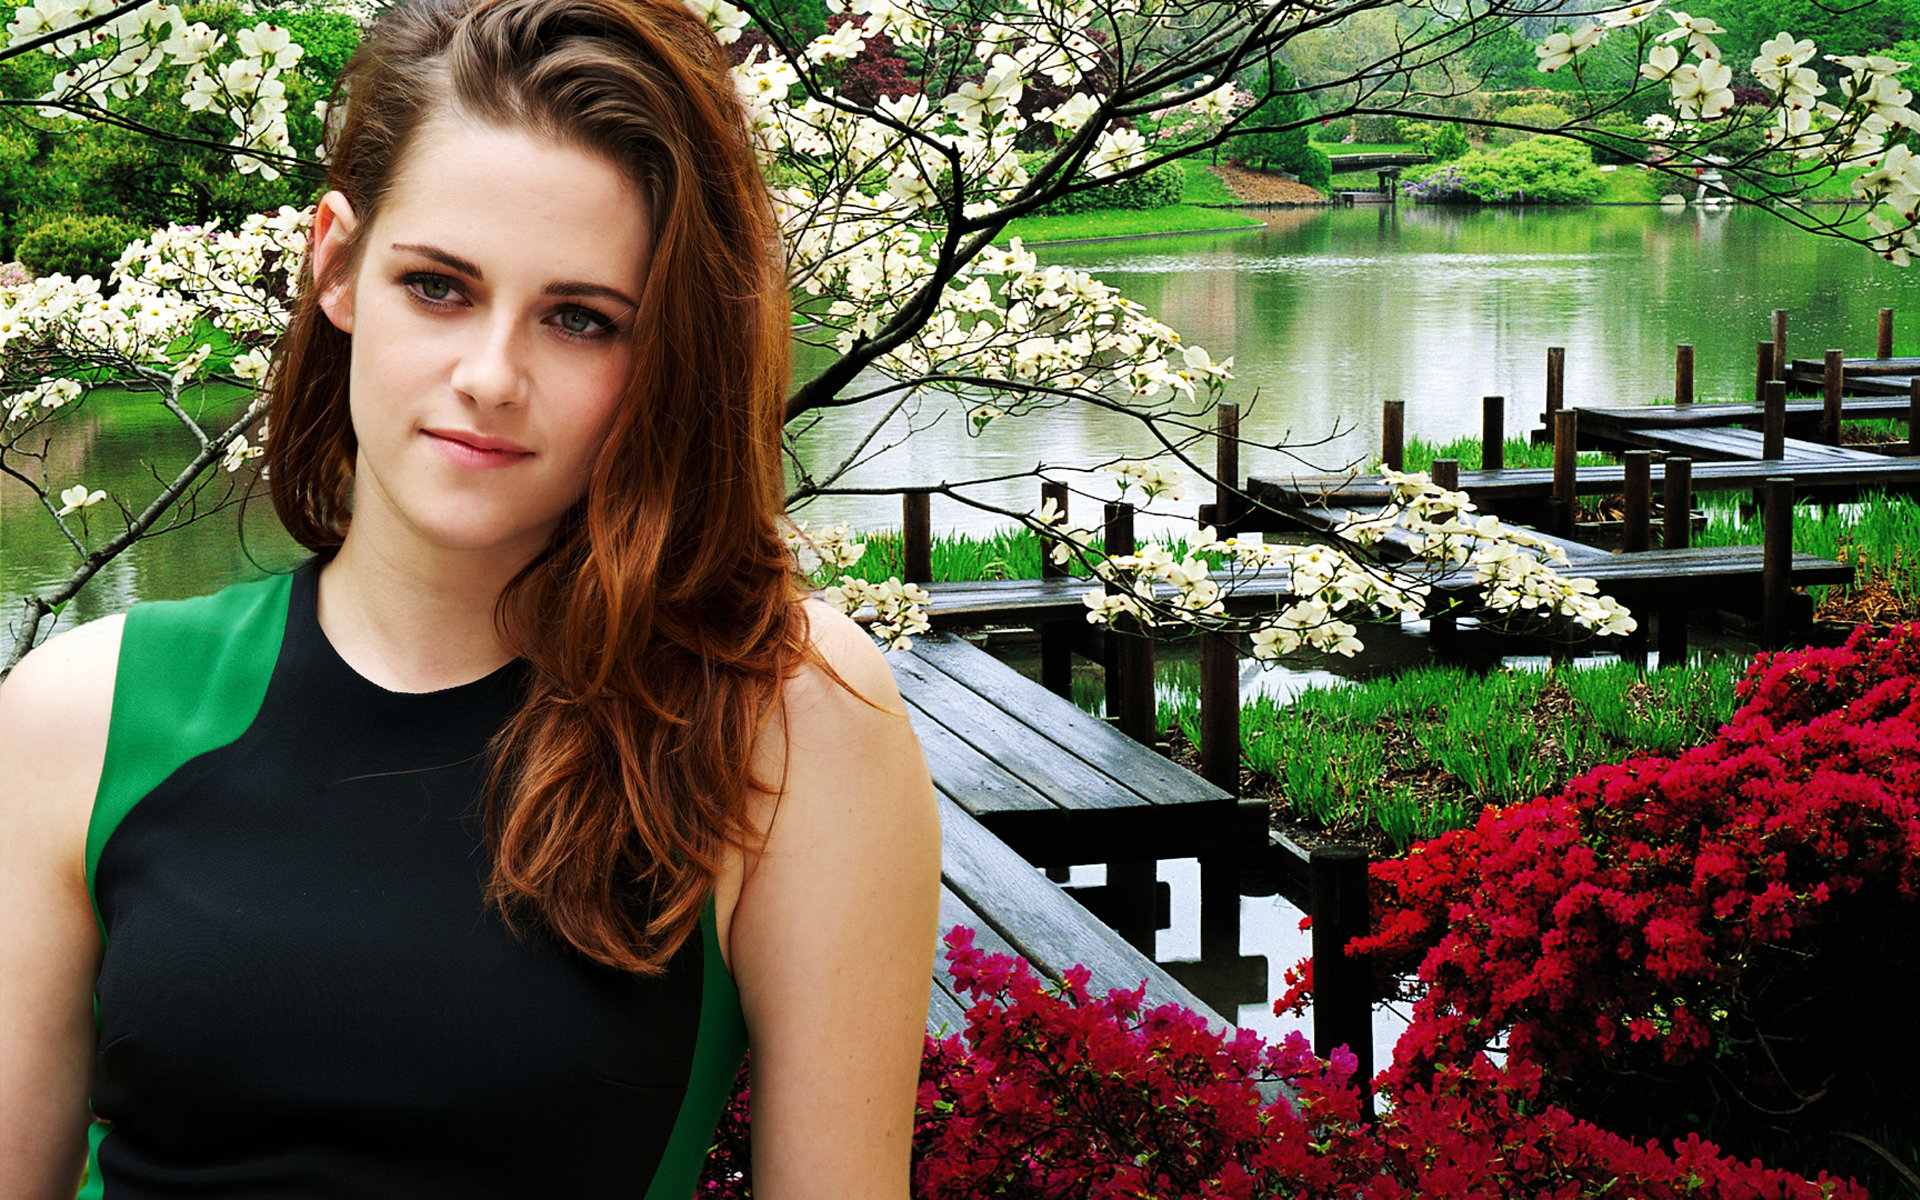 Download hd 1920x1200 Kristen Stewart PC background ID:114609 for free